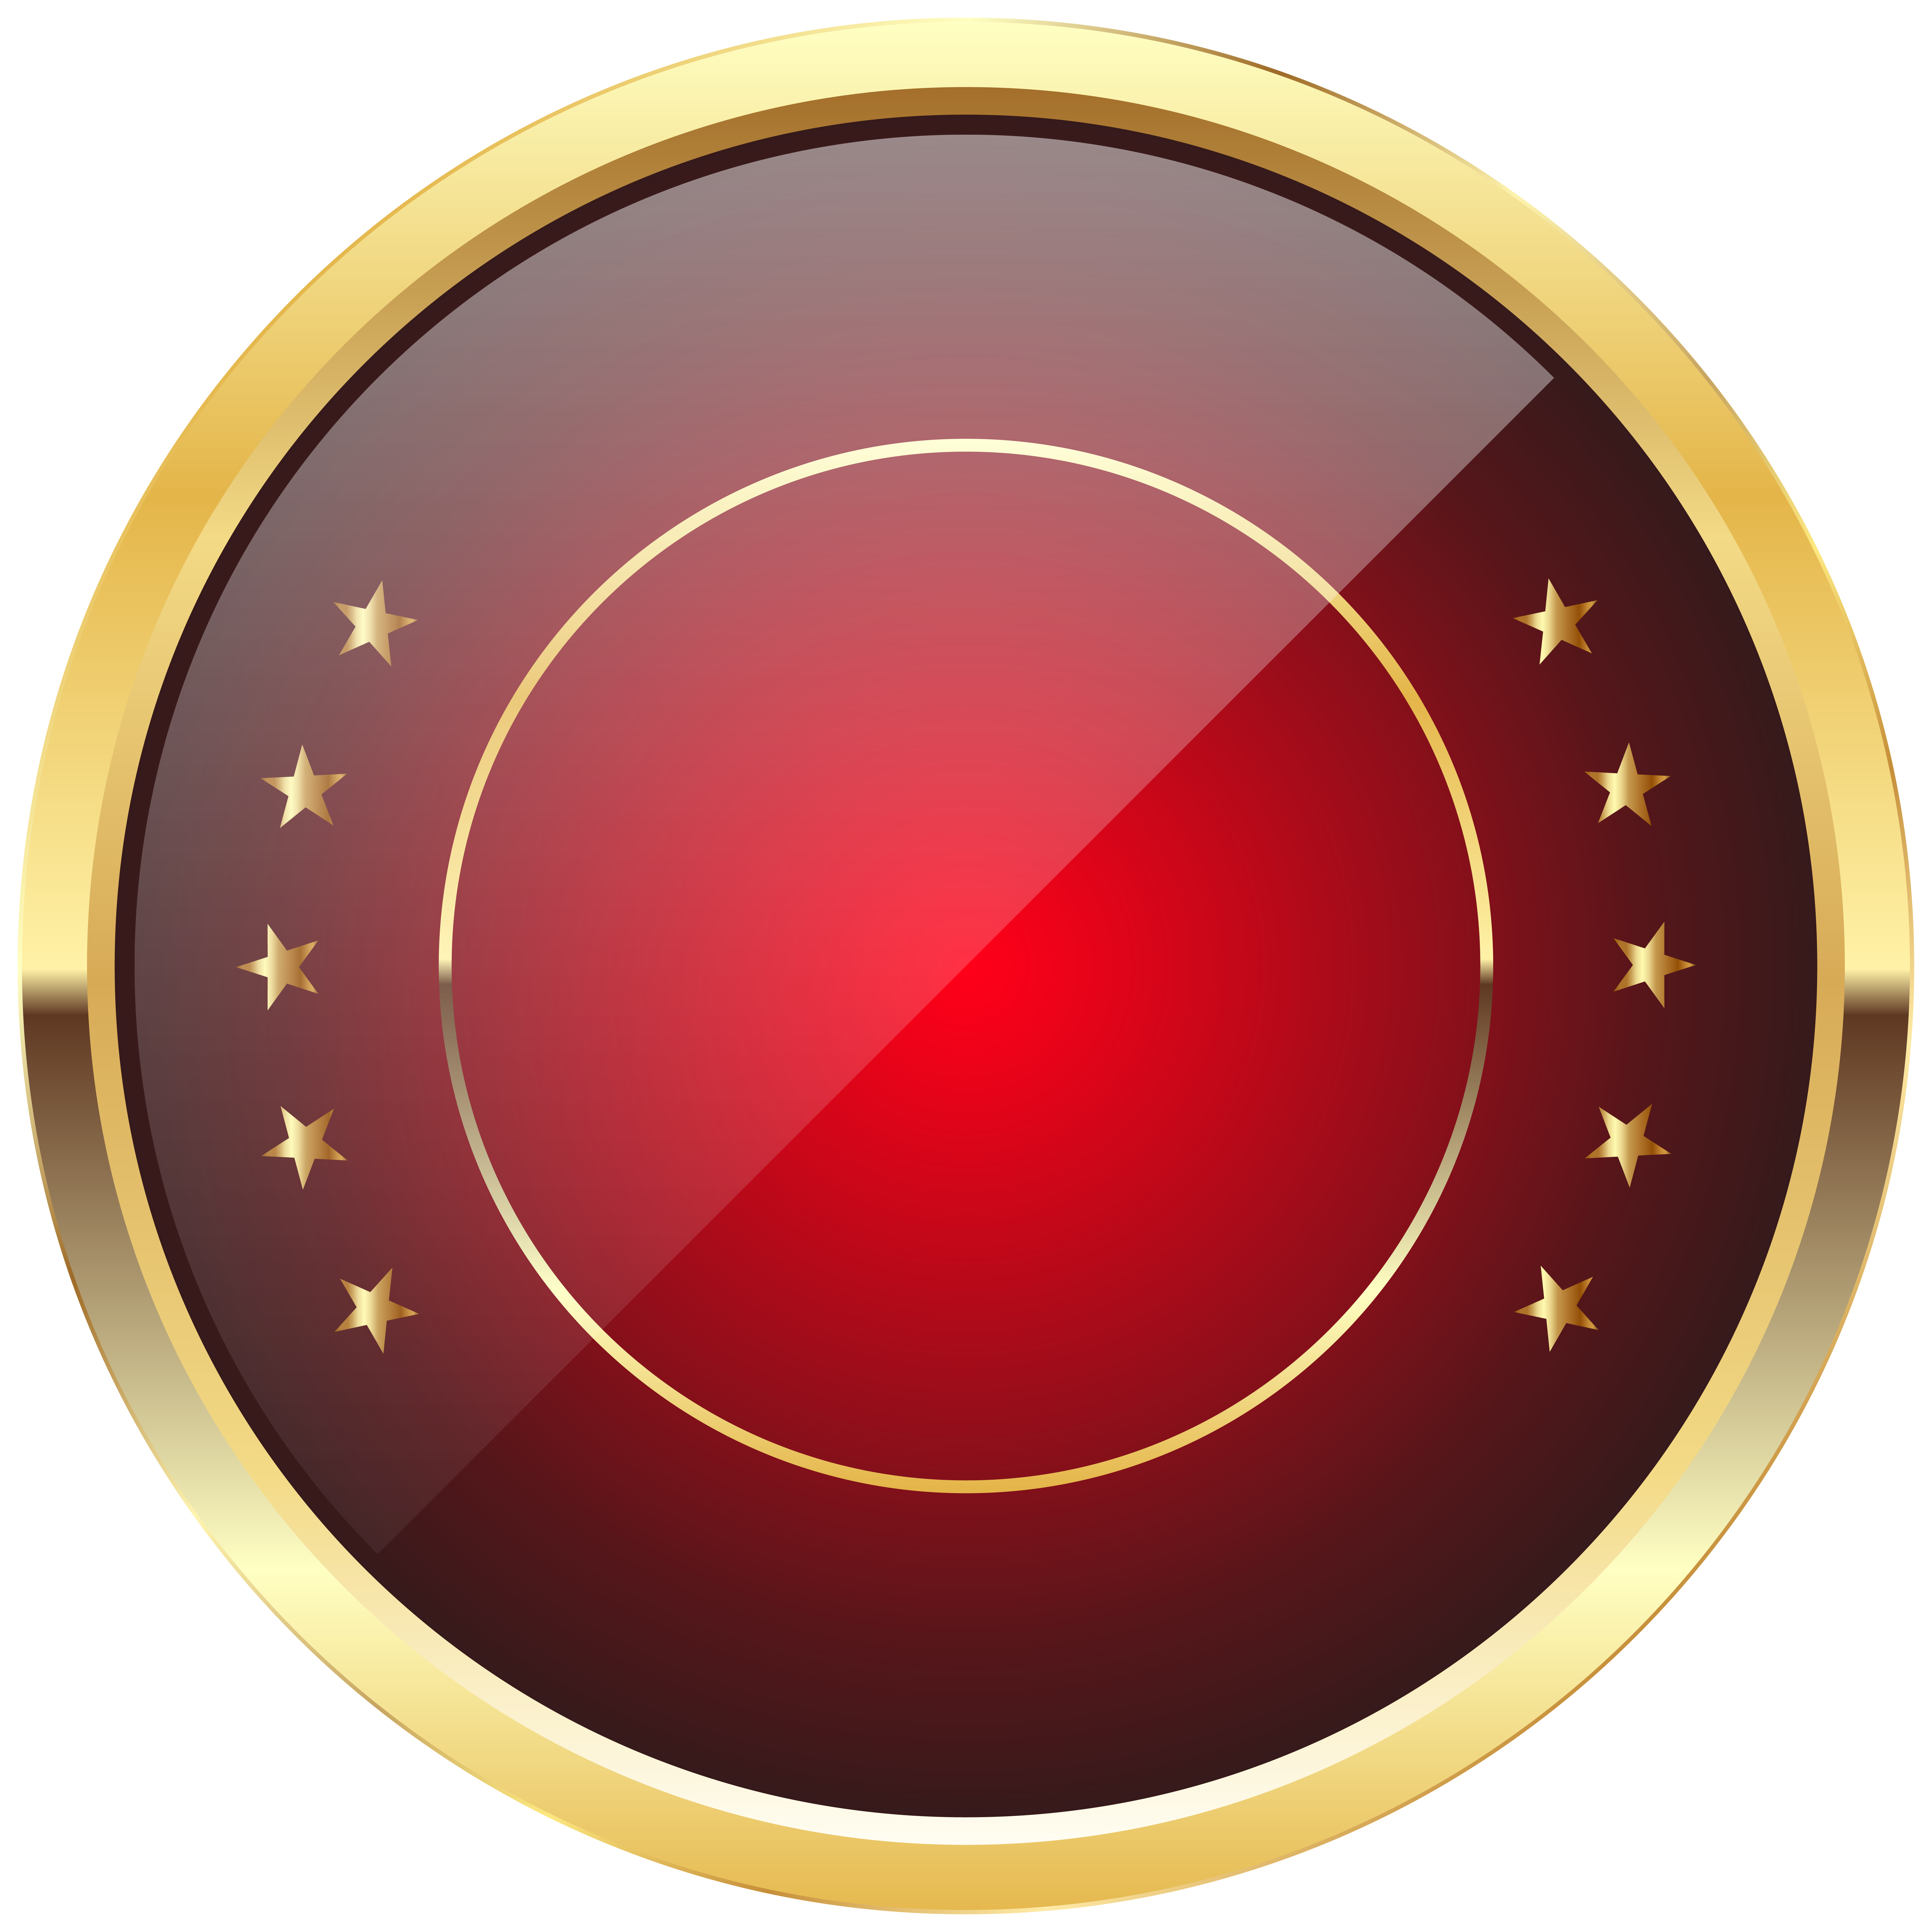 Red seal png. Badge template transparent clip